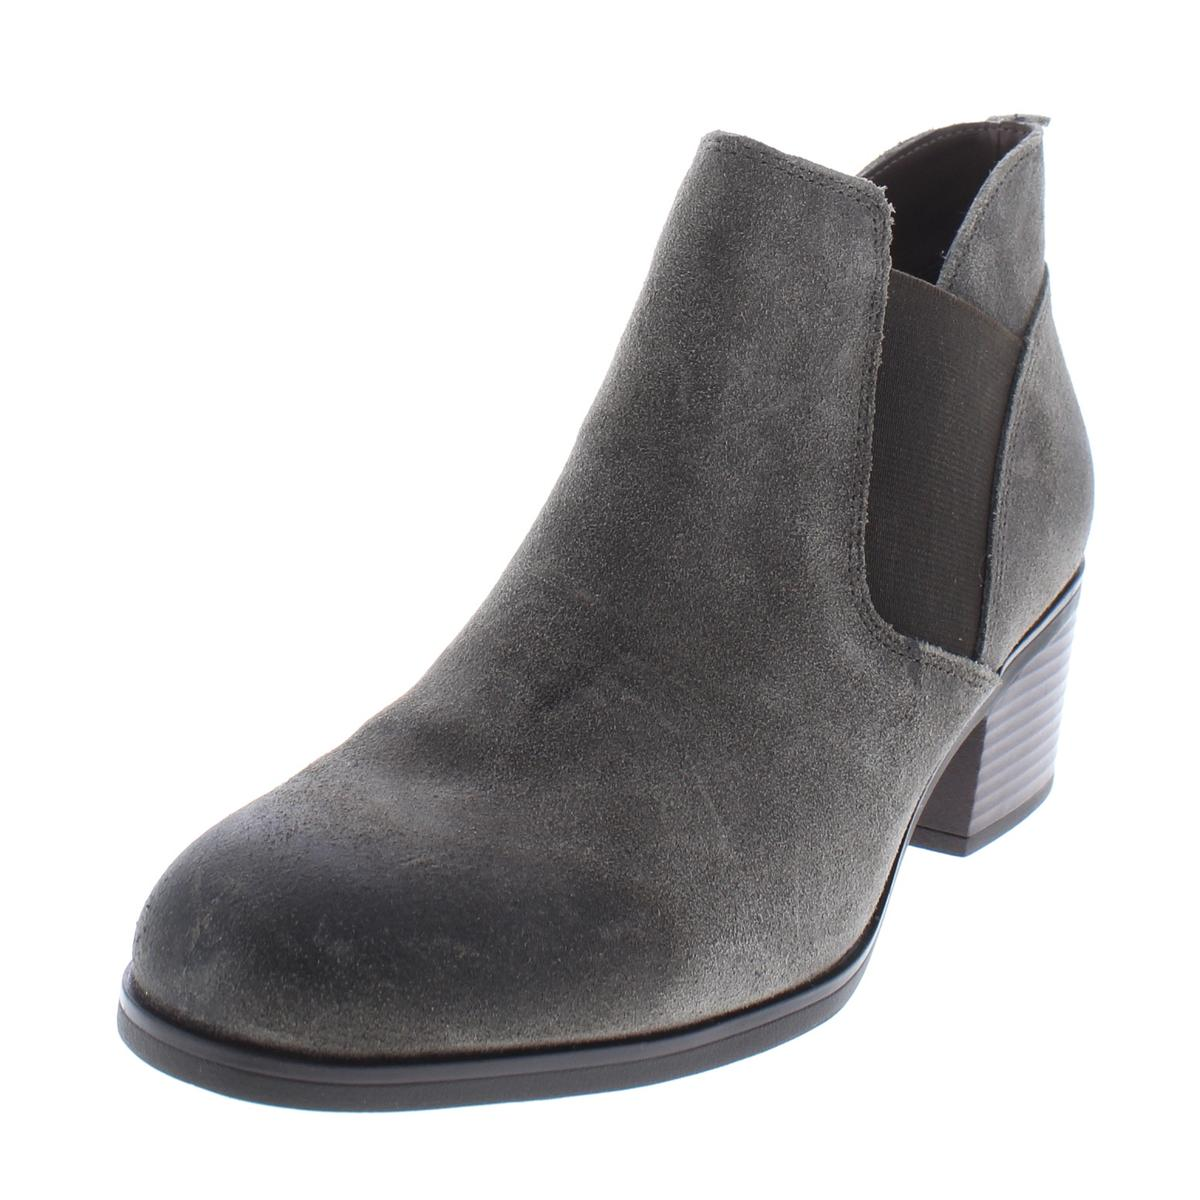 Rockport Damenschuhe Danii Suede Booties Padded Insole Chelsea Chelsea Chelsea Stiefel Schuhes BHFO 6789 a2322b